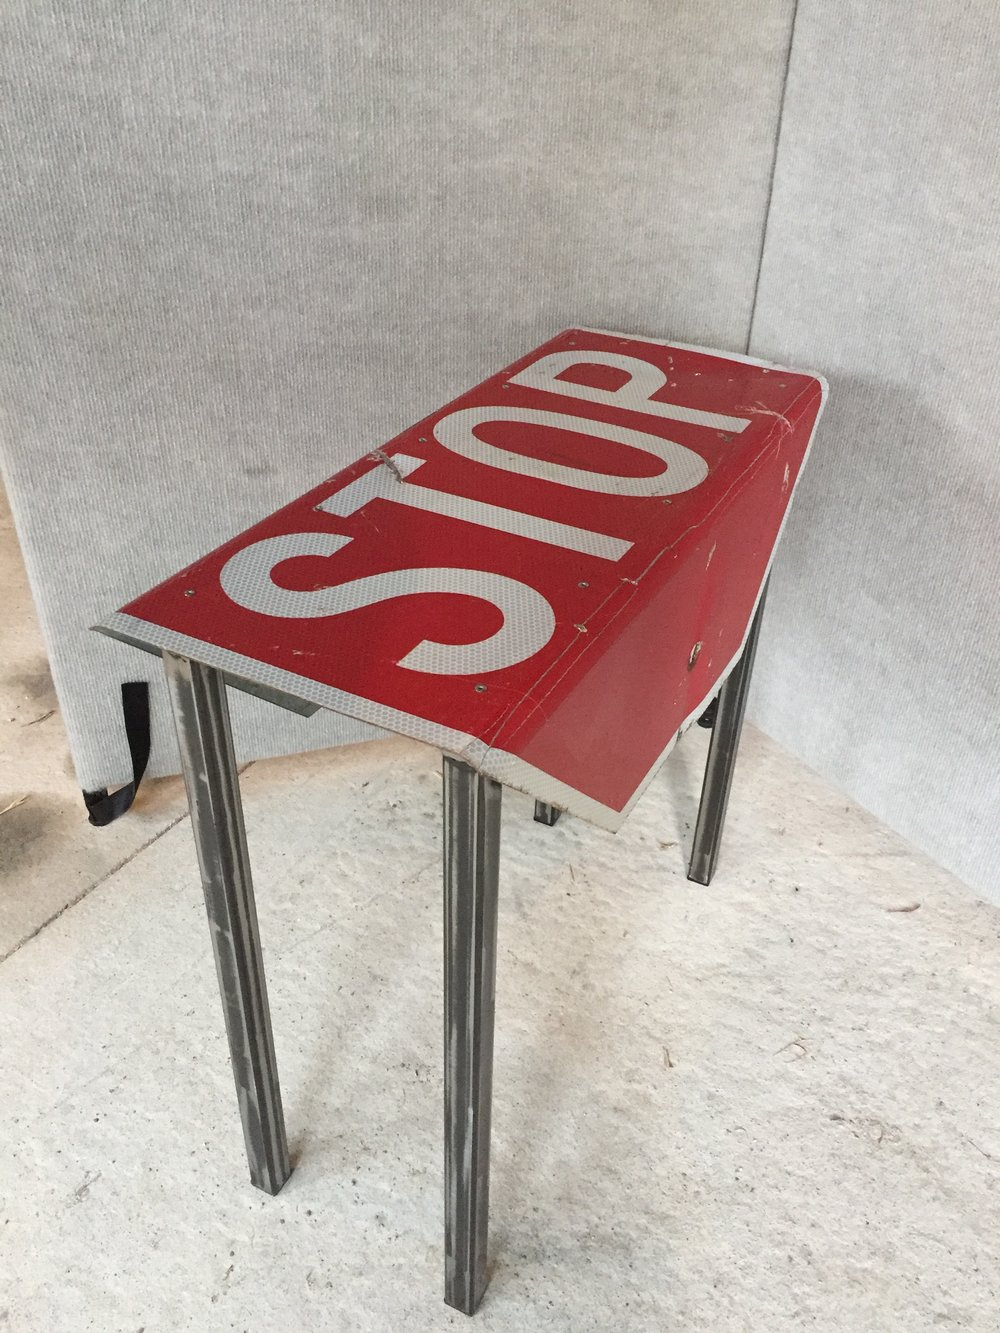 stop side table.JPG